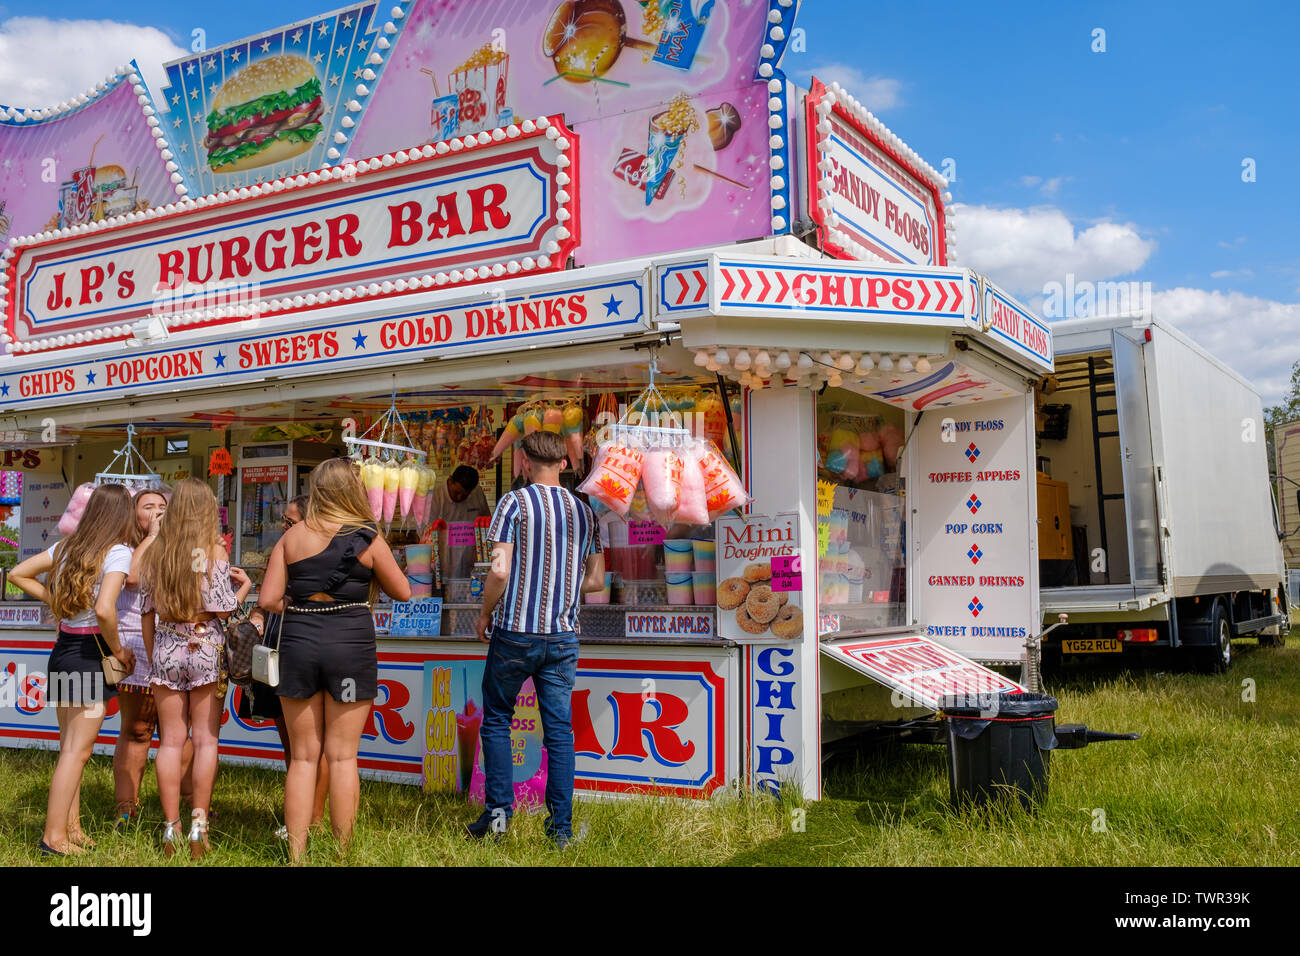 Cambridge, UK. 22nd June 2019. The Saturday of the historic annual midsummer fair attracts many traveller communities from around the UK. Market stalls offer goods, and a mix of new and traditional fairground rides entertain the crowds. CamNews / Alamy Live News Stock Photo